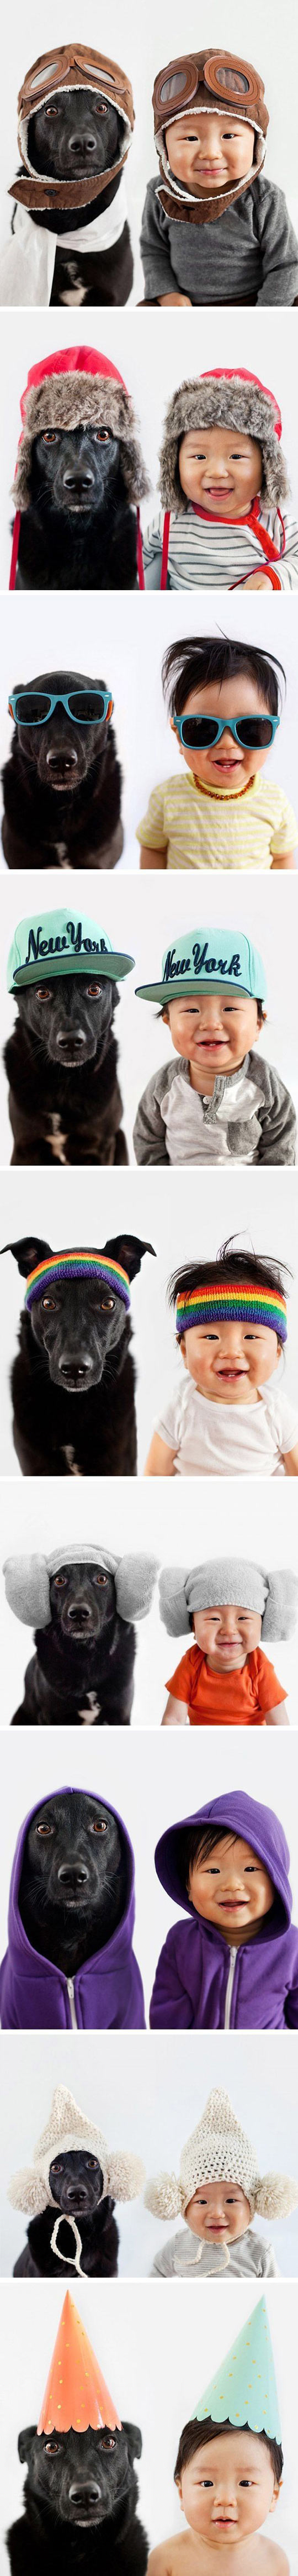 funny-Asian-kid-dog-clothes-hats